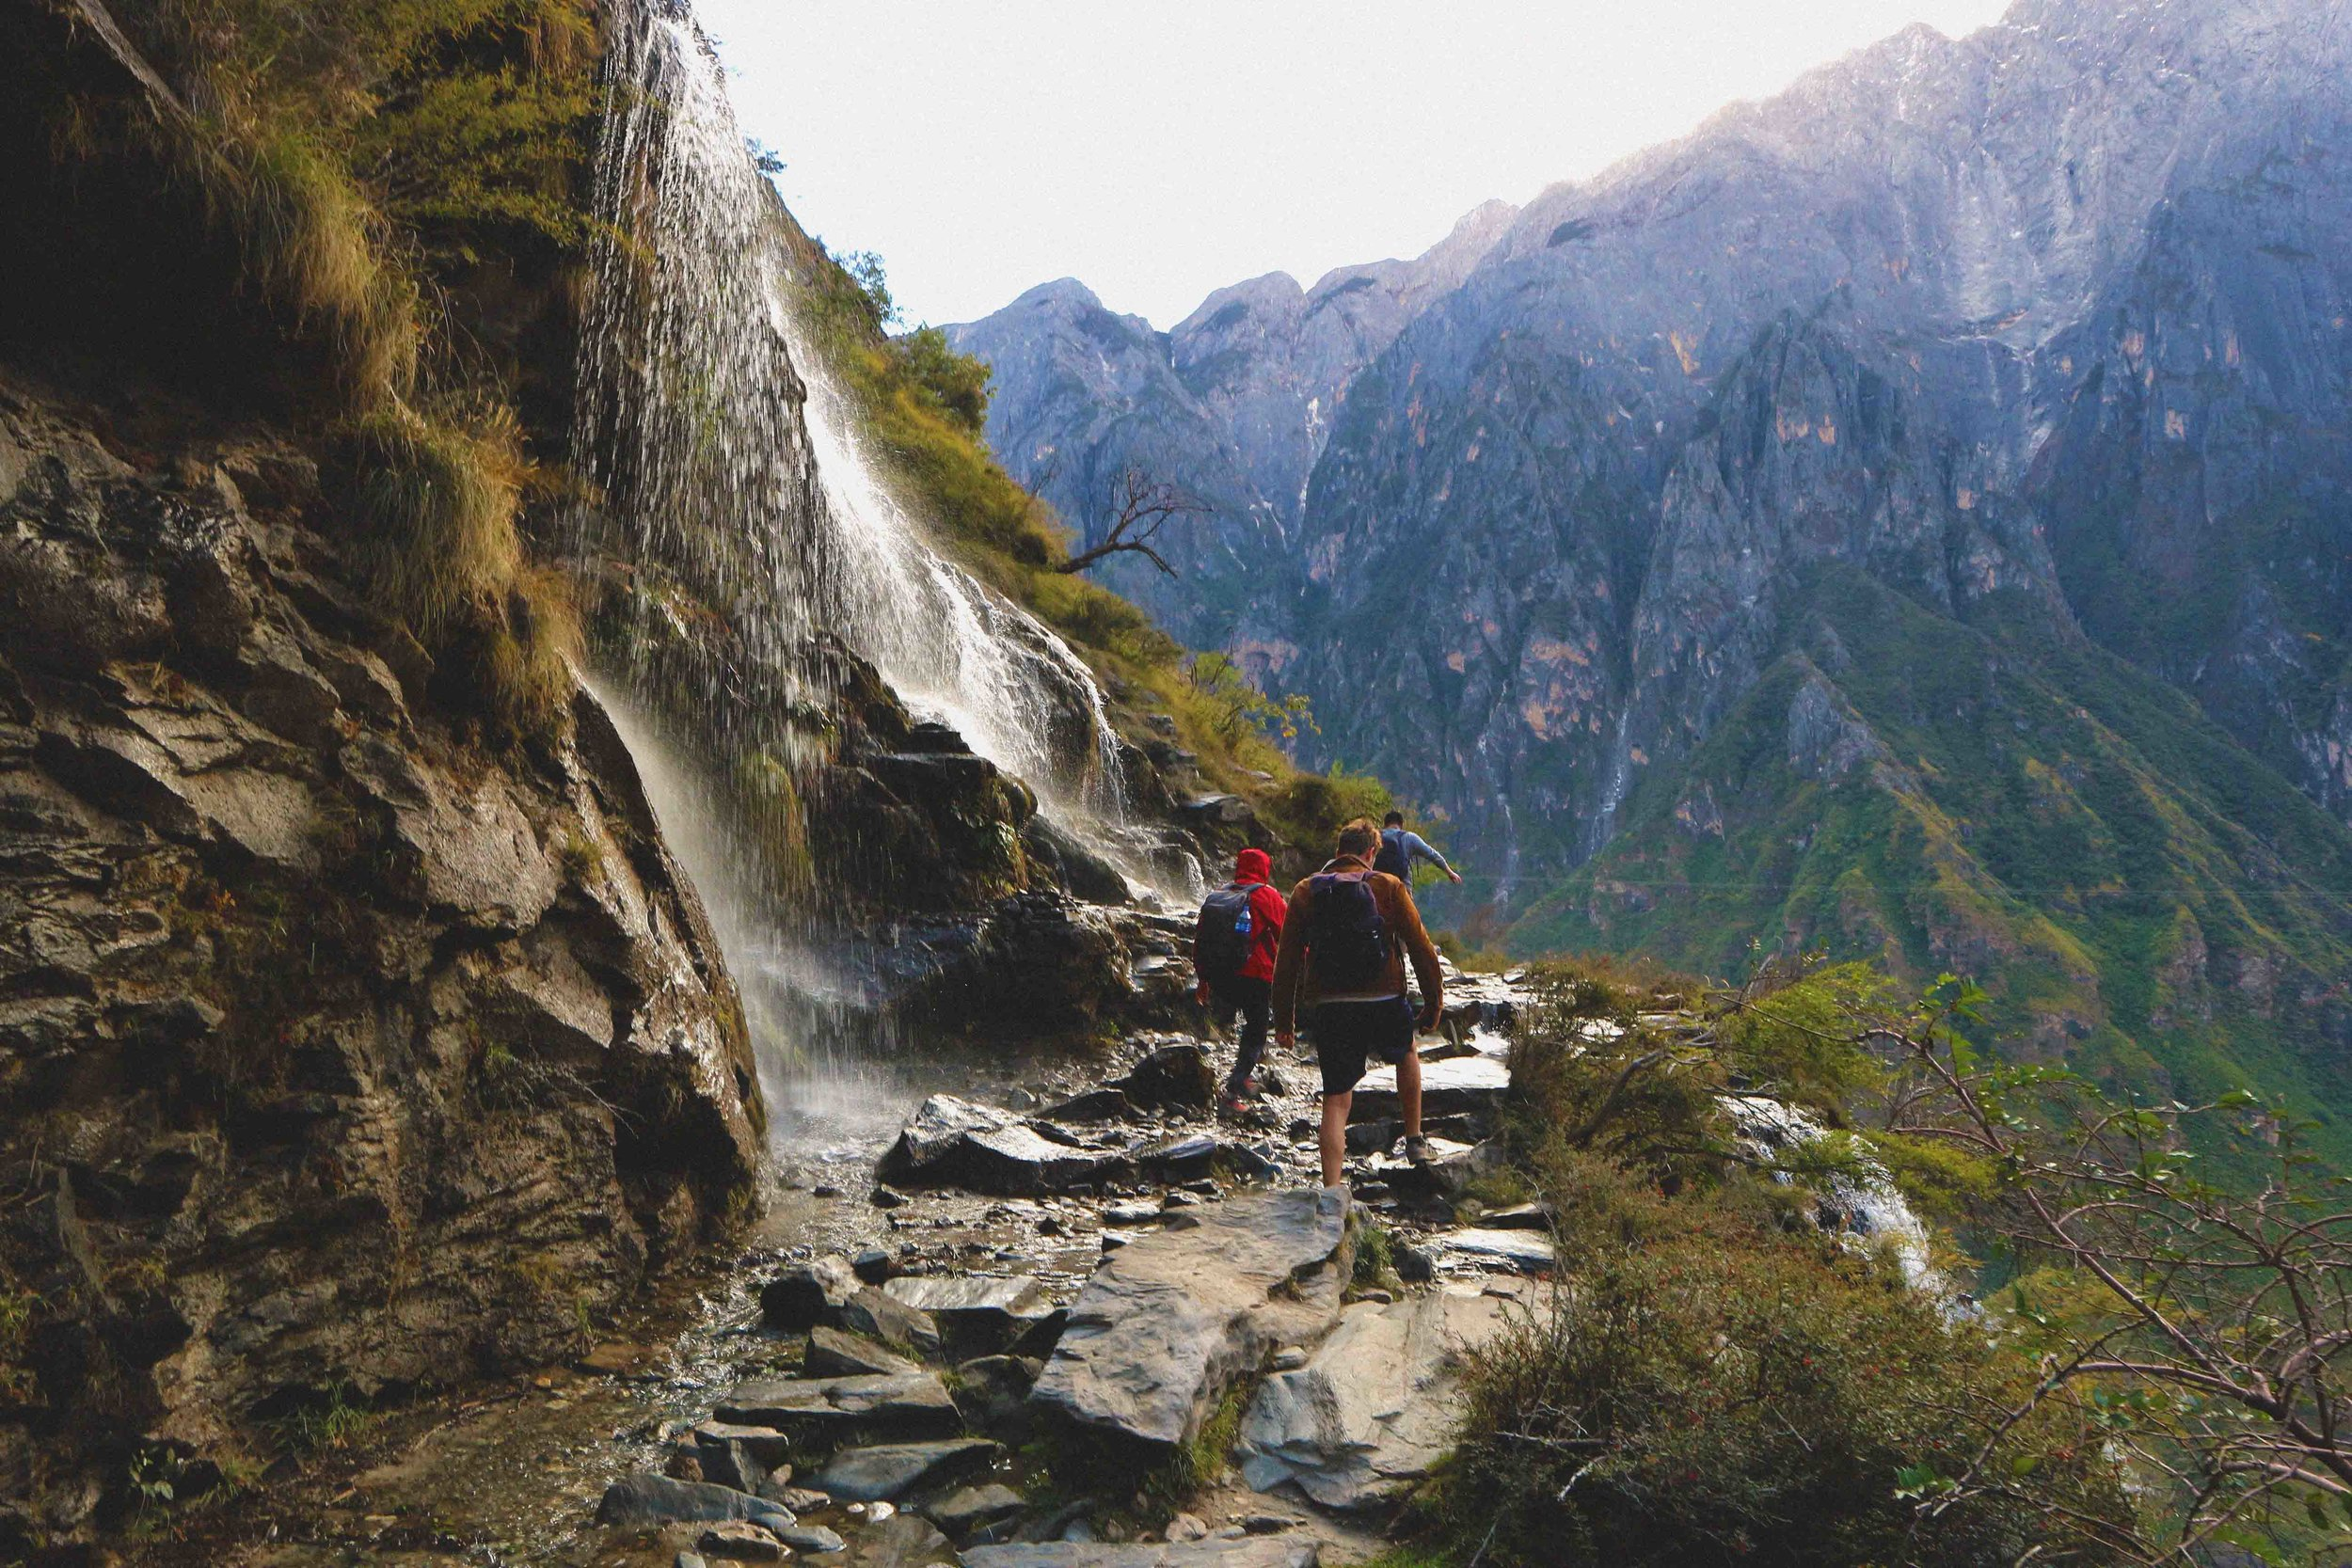 Passing a waterfall on the downward pass